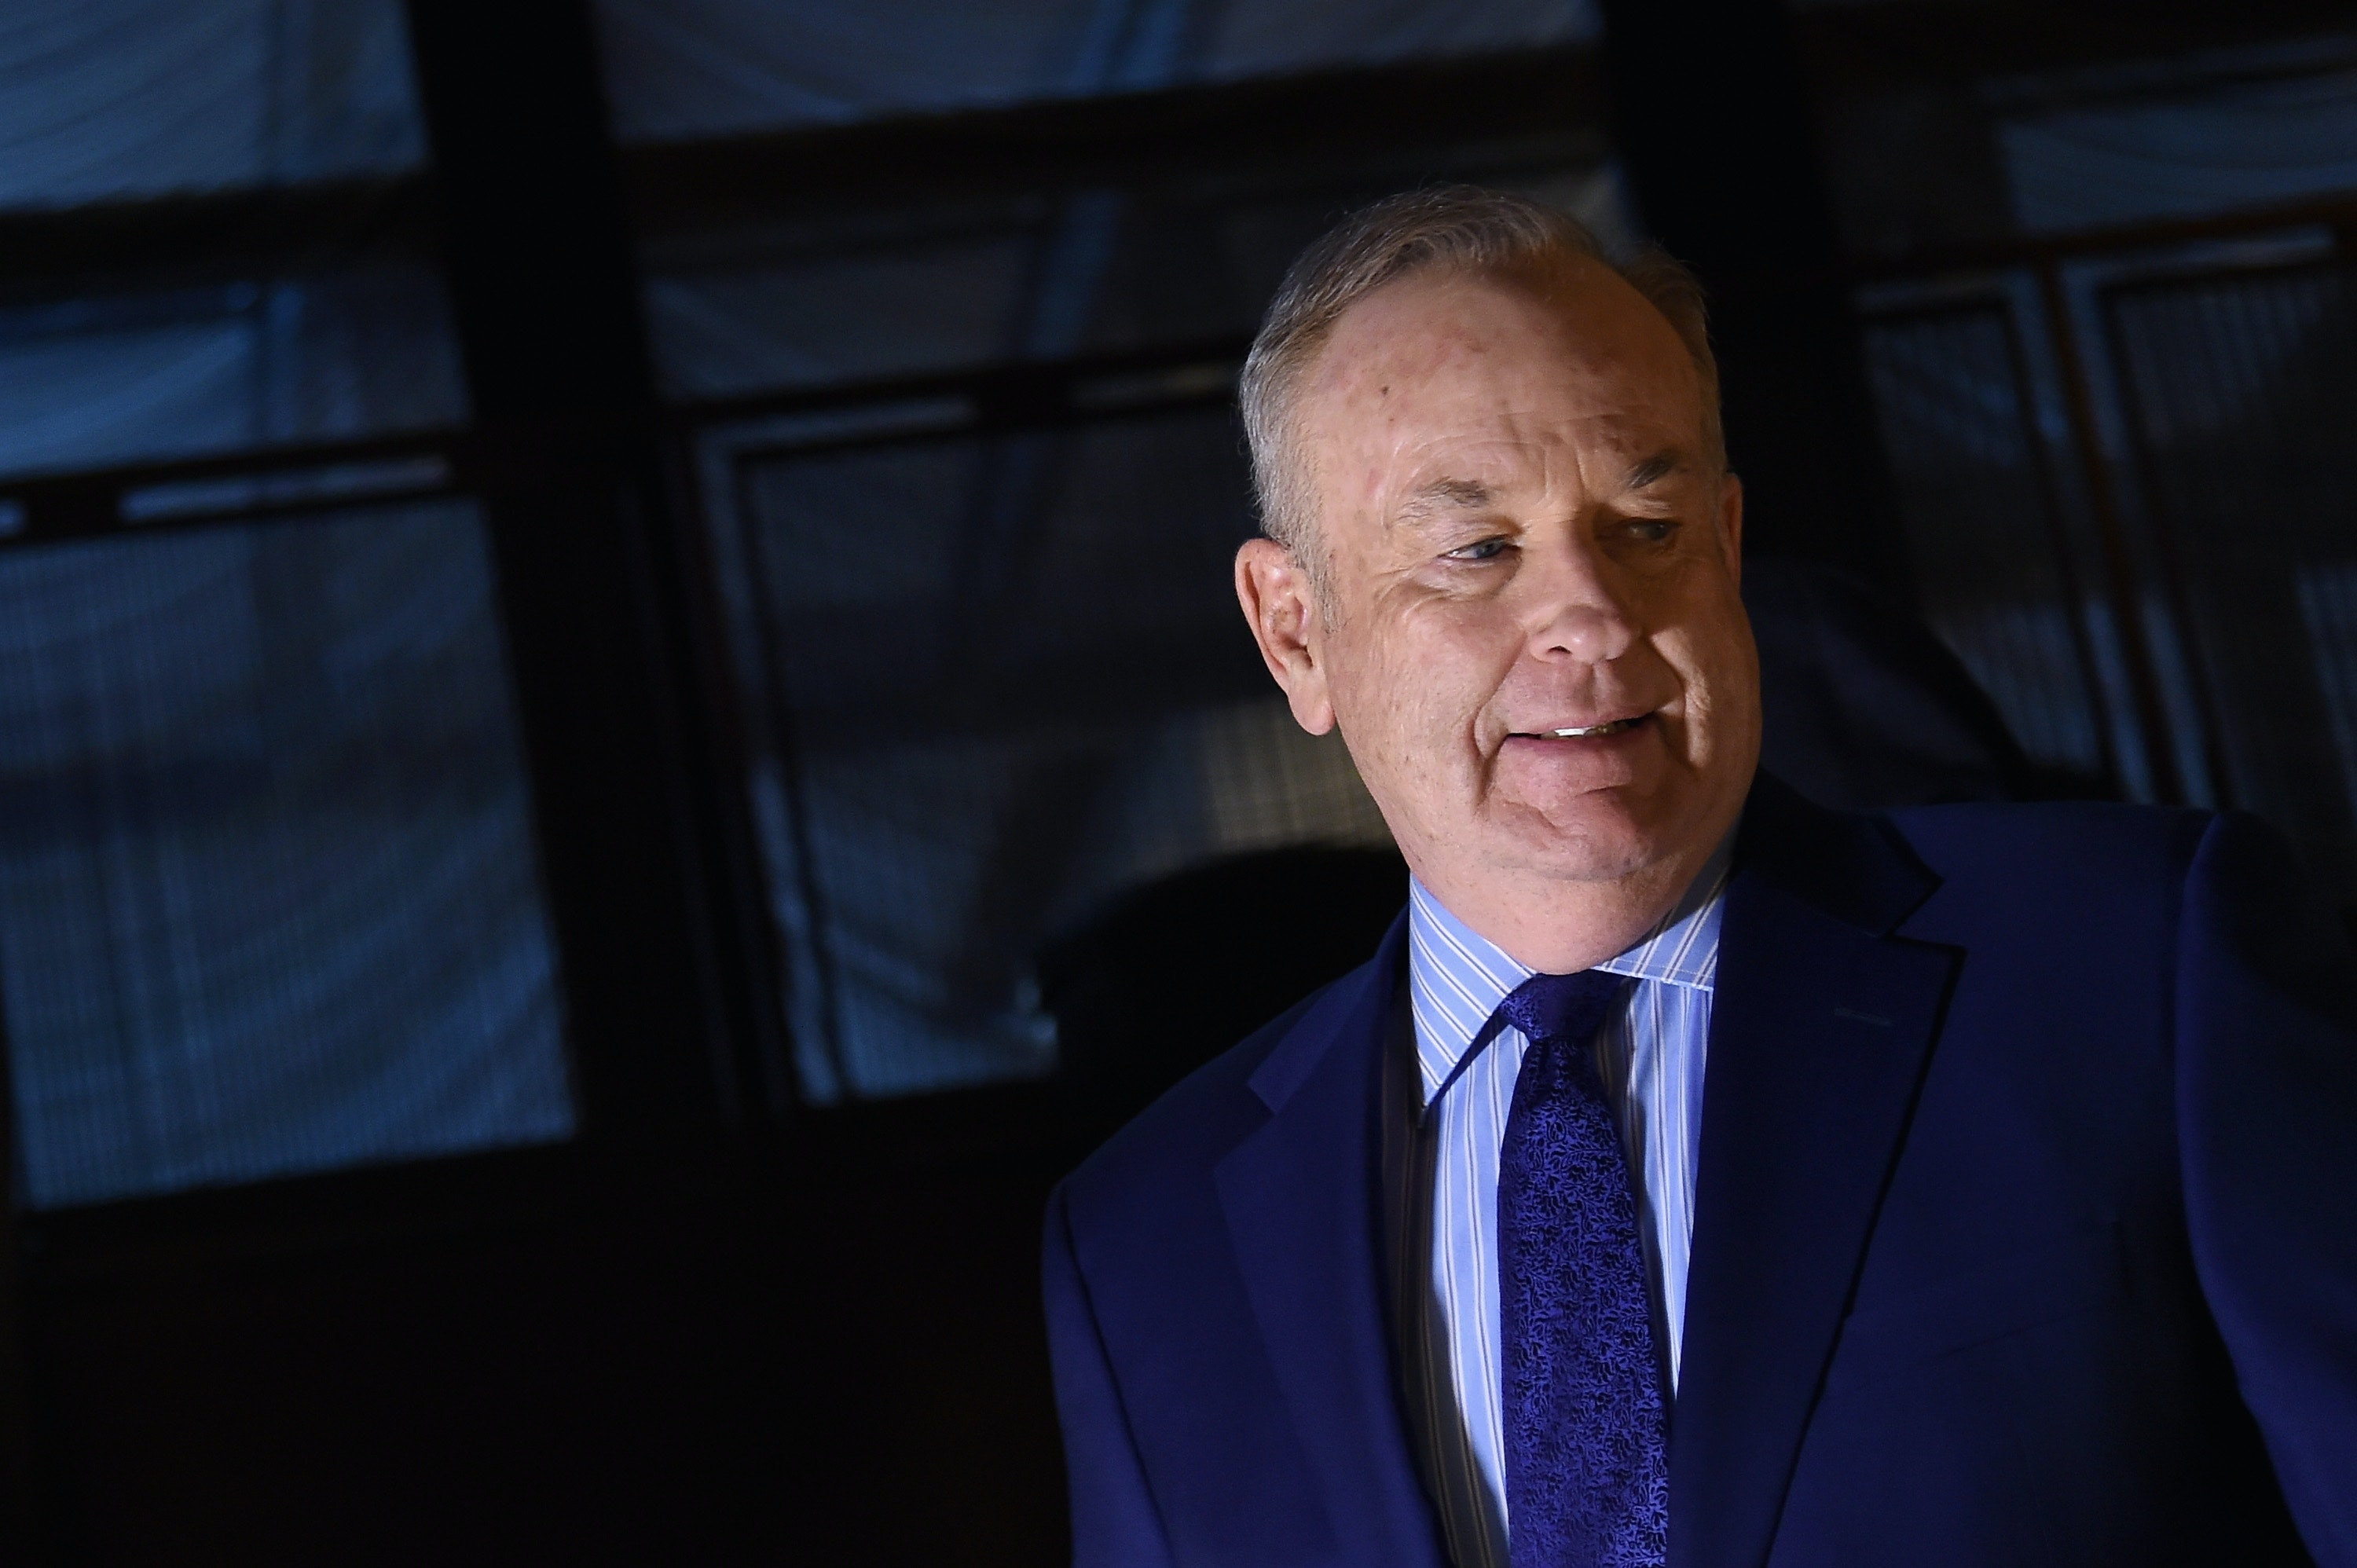 Why the Murdochs axed their biggest Fox News star Bill O'Reilly